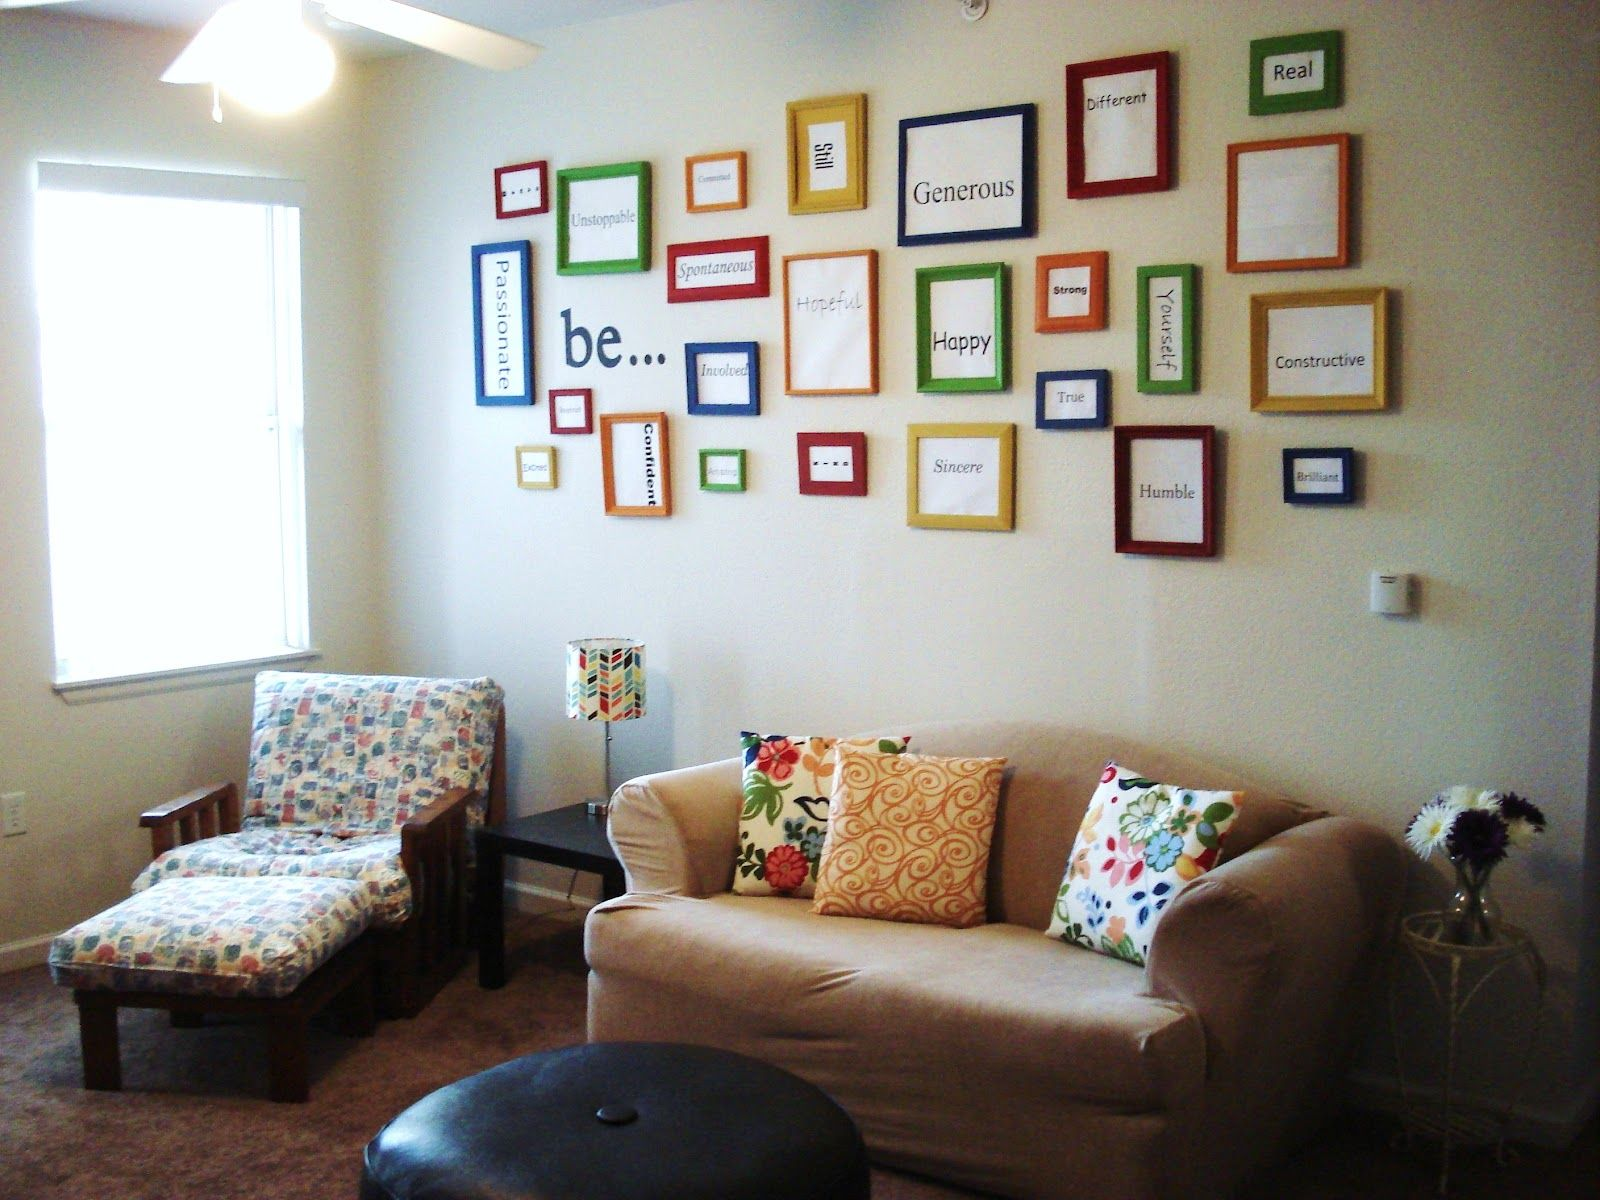 Living Room Wall Decor Ideas Pinterest dorm room and ideas on pinterest eye catching living wall decor with many small square pictures colorful frames attach white